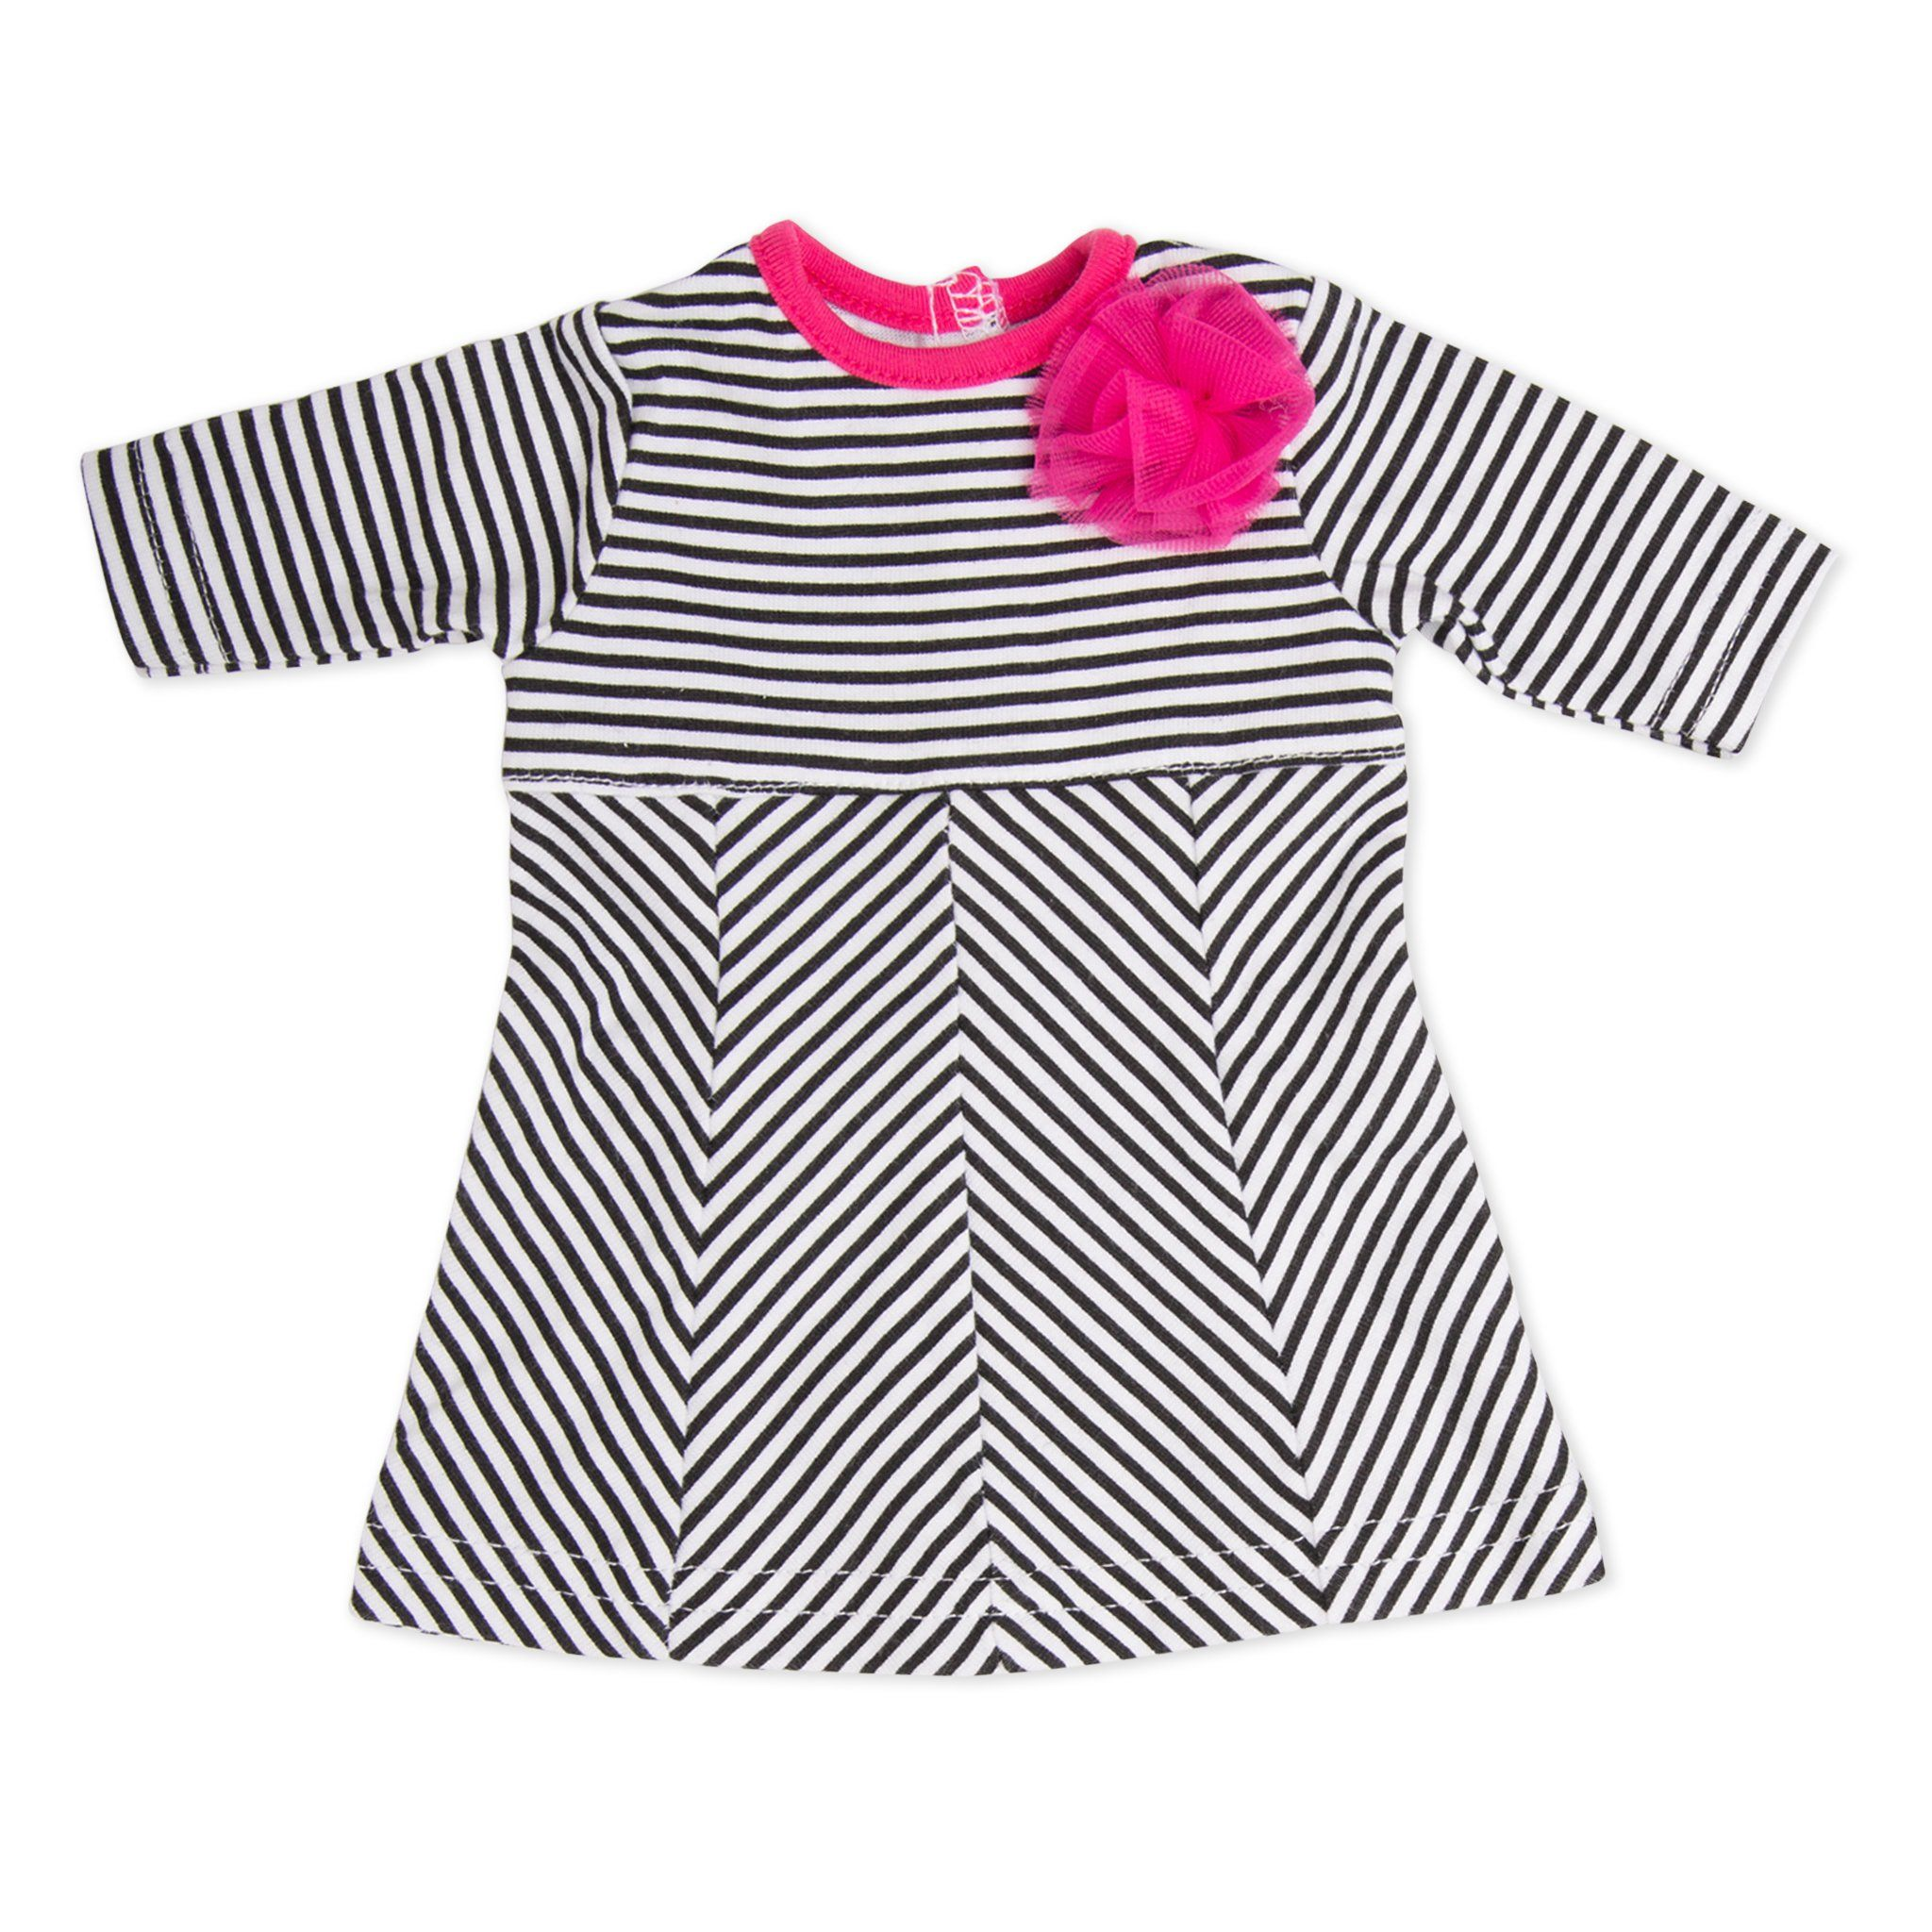 Ile de passage black and white striped dress with fuchsia pink flower detail fits all 18 inch dolls.